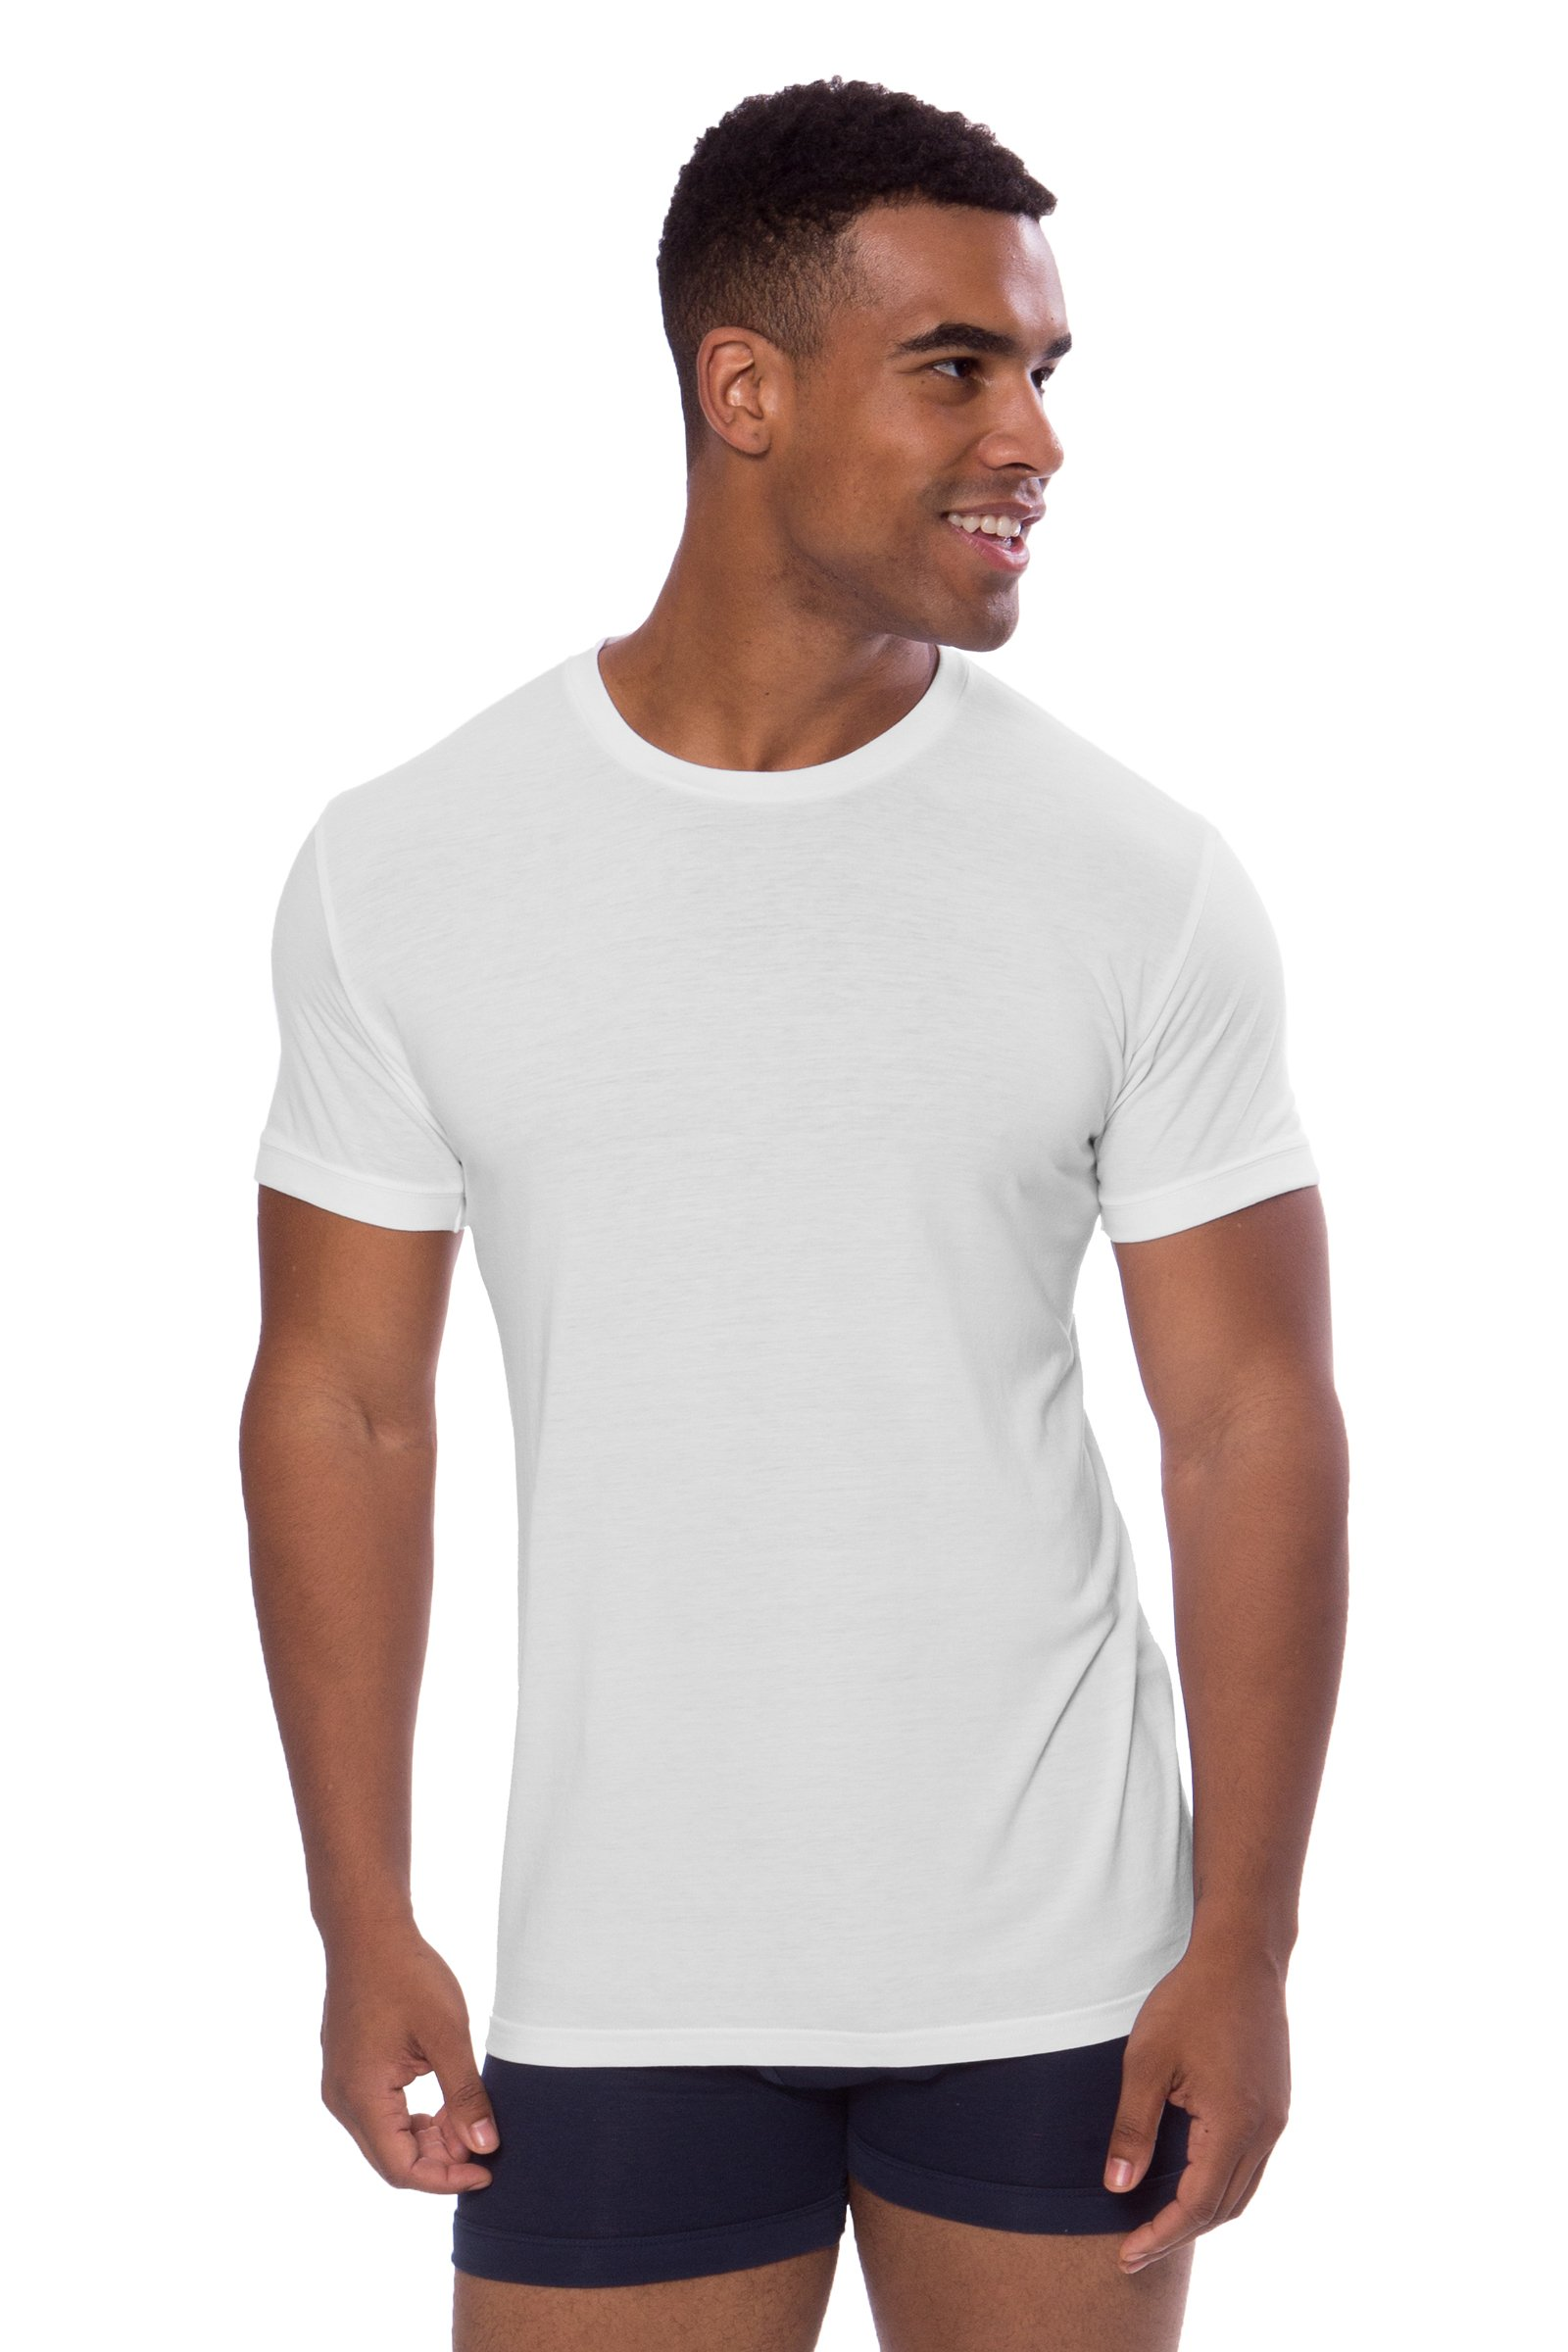 Crew Neck Undershirt for Men - Luxury Shirt in Bamboo Viscose (Natural White, X-Large/Tall) Popular Gifts for Dad Husband Son MB6001-NWH-XLT